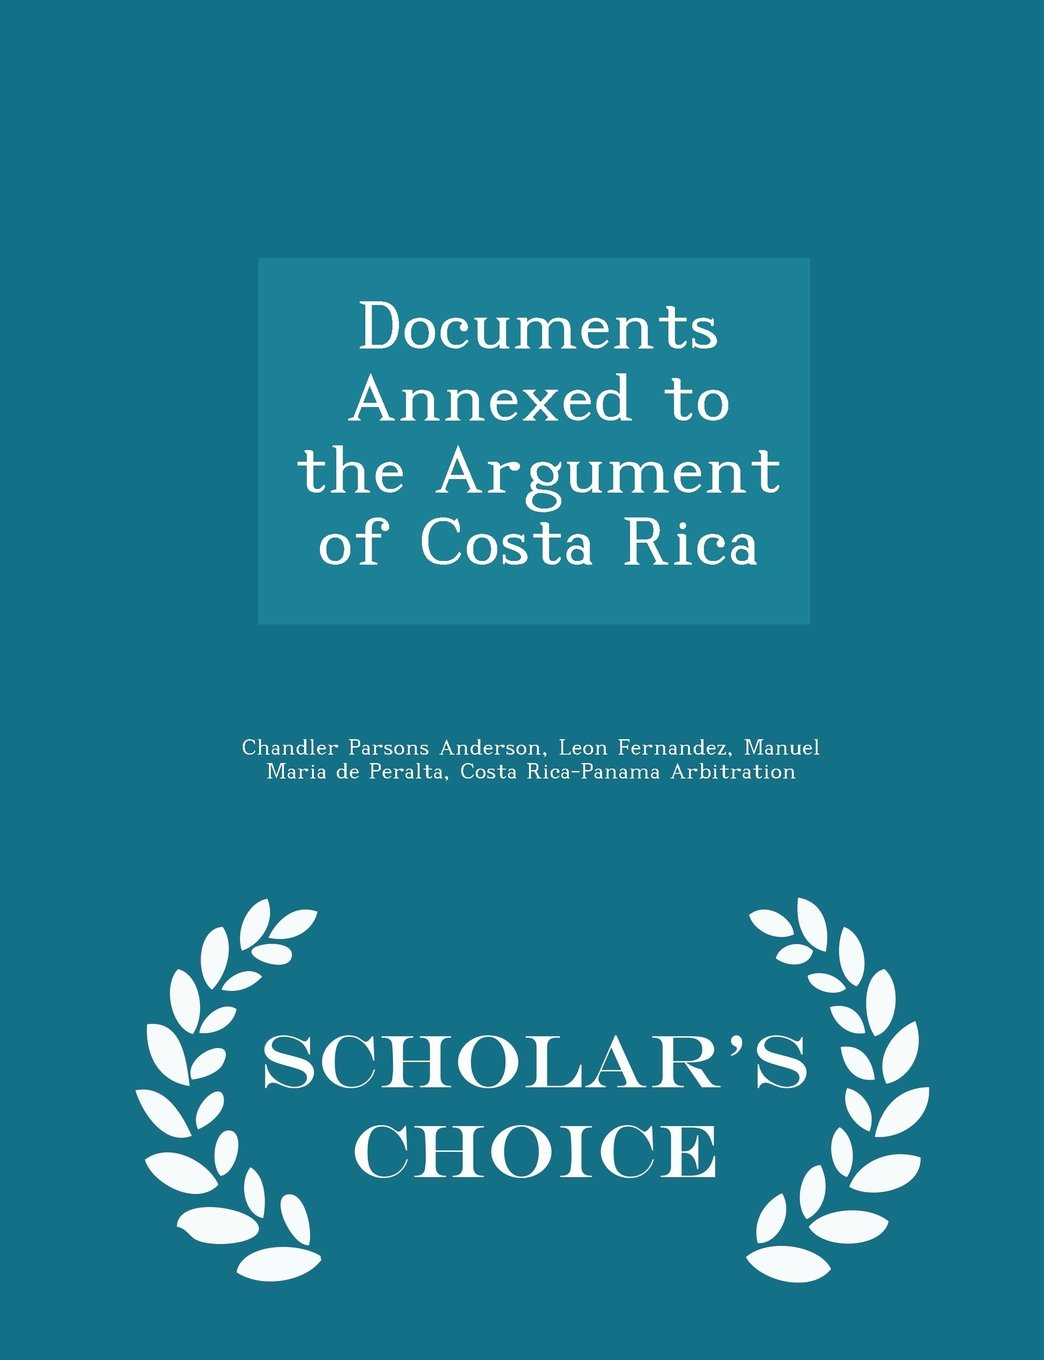 Documents Annexed to the Argument of Costa Rica - Scholar's Choice Edition